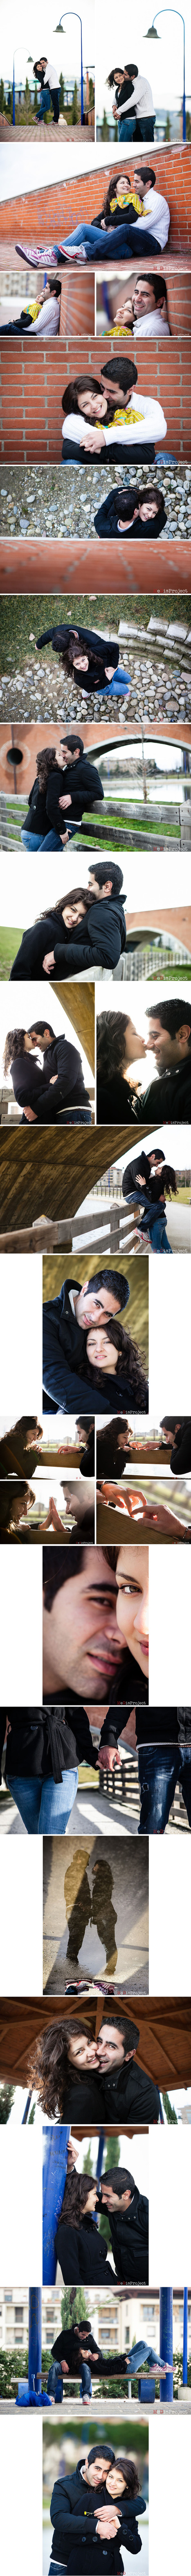 Anelim & Ali | A Engagement photography in Florence | love story photography in tuscany | Scoop.it